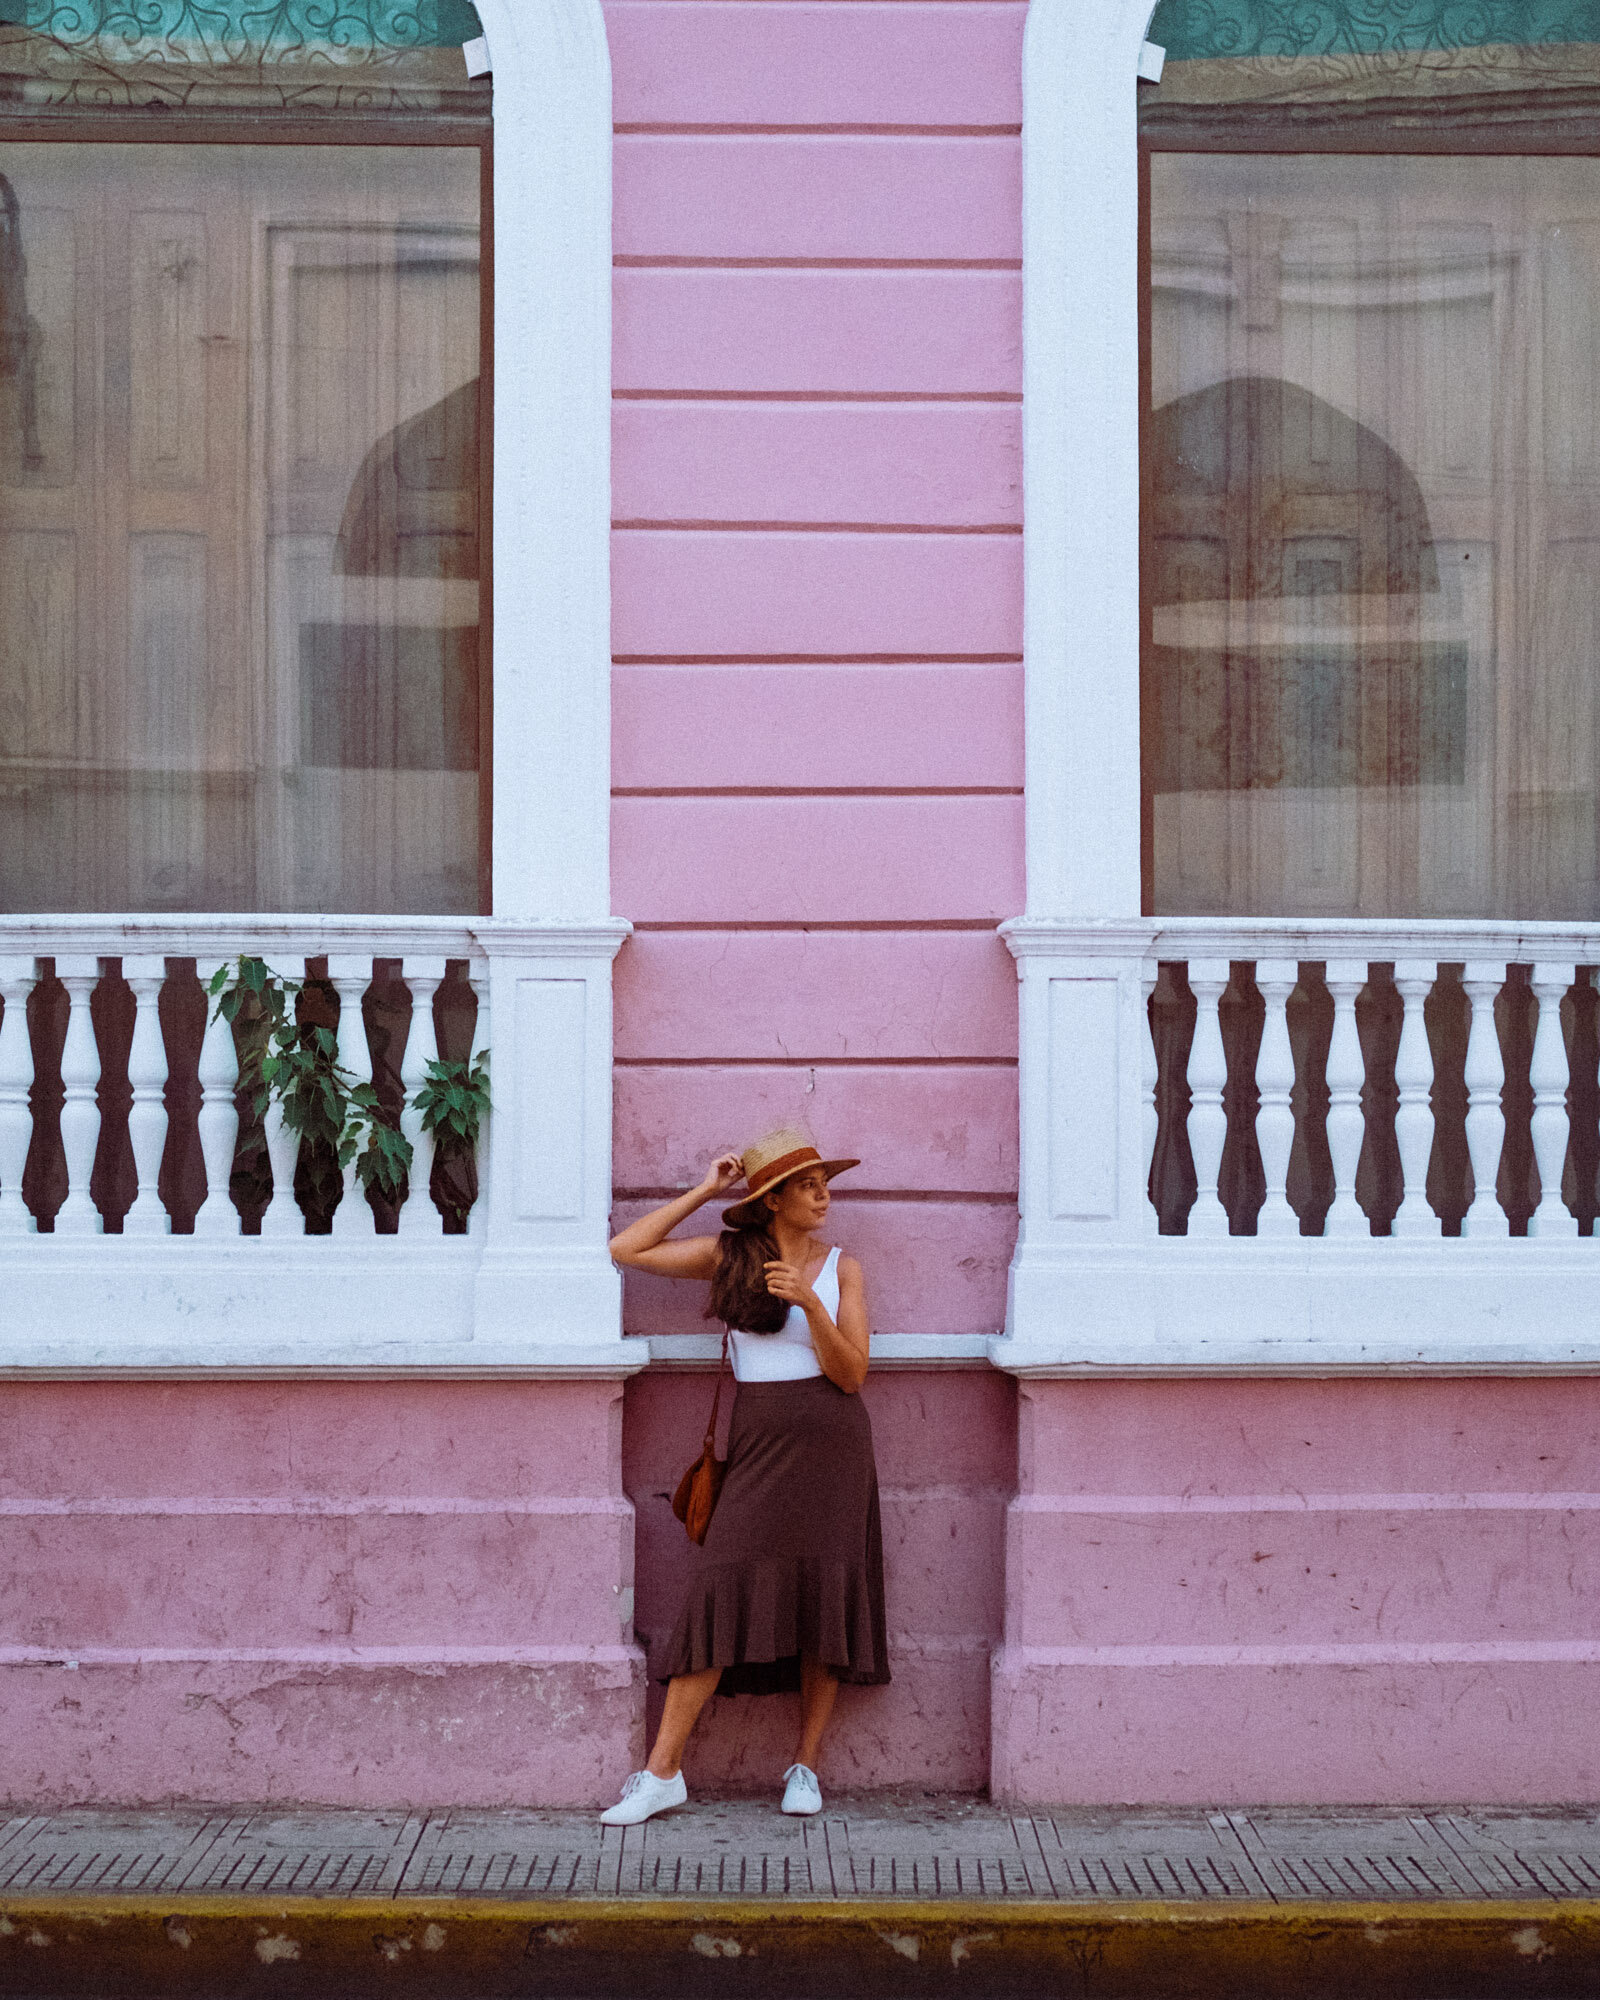 Rachel Off Duty: A Woman Stands in Front of a Pink Building in Merida, Mexico